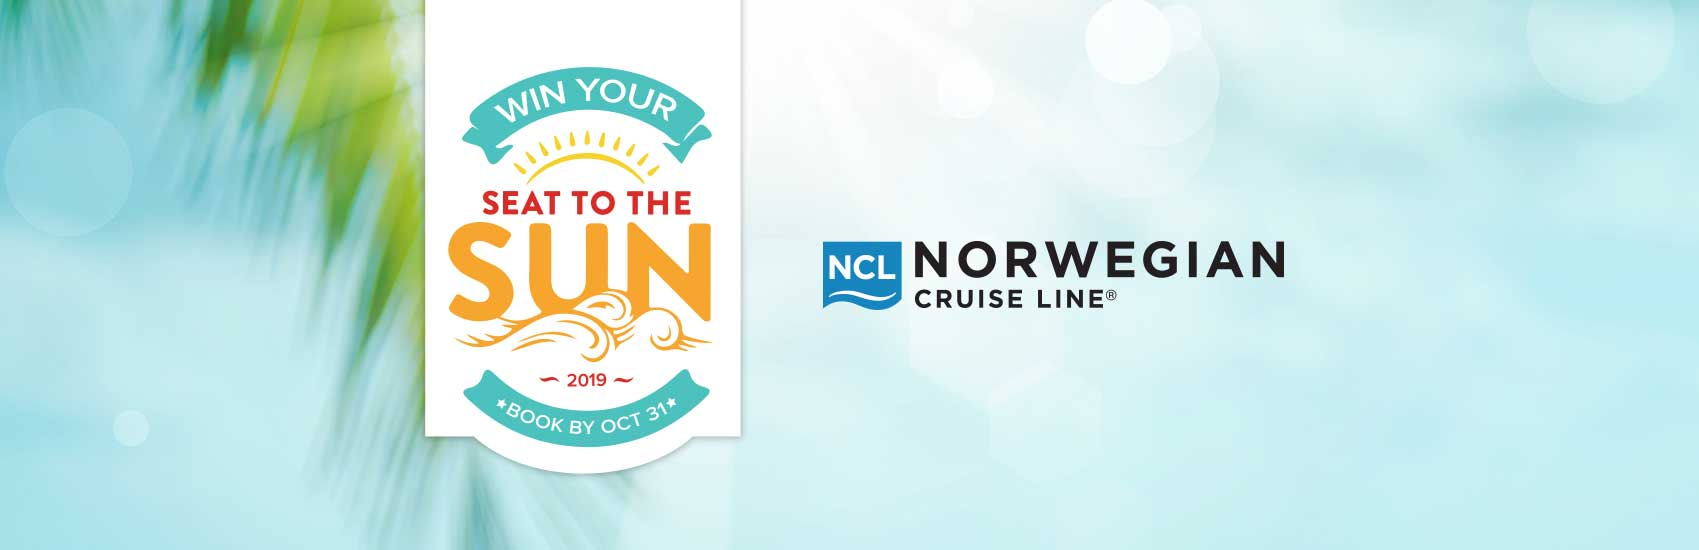 Norwegian Cruise Line Packages 0